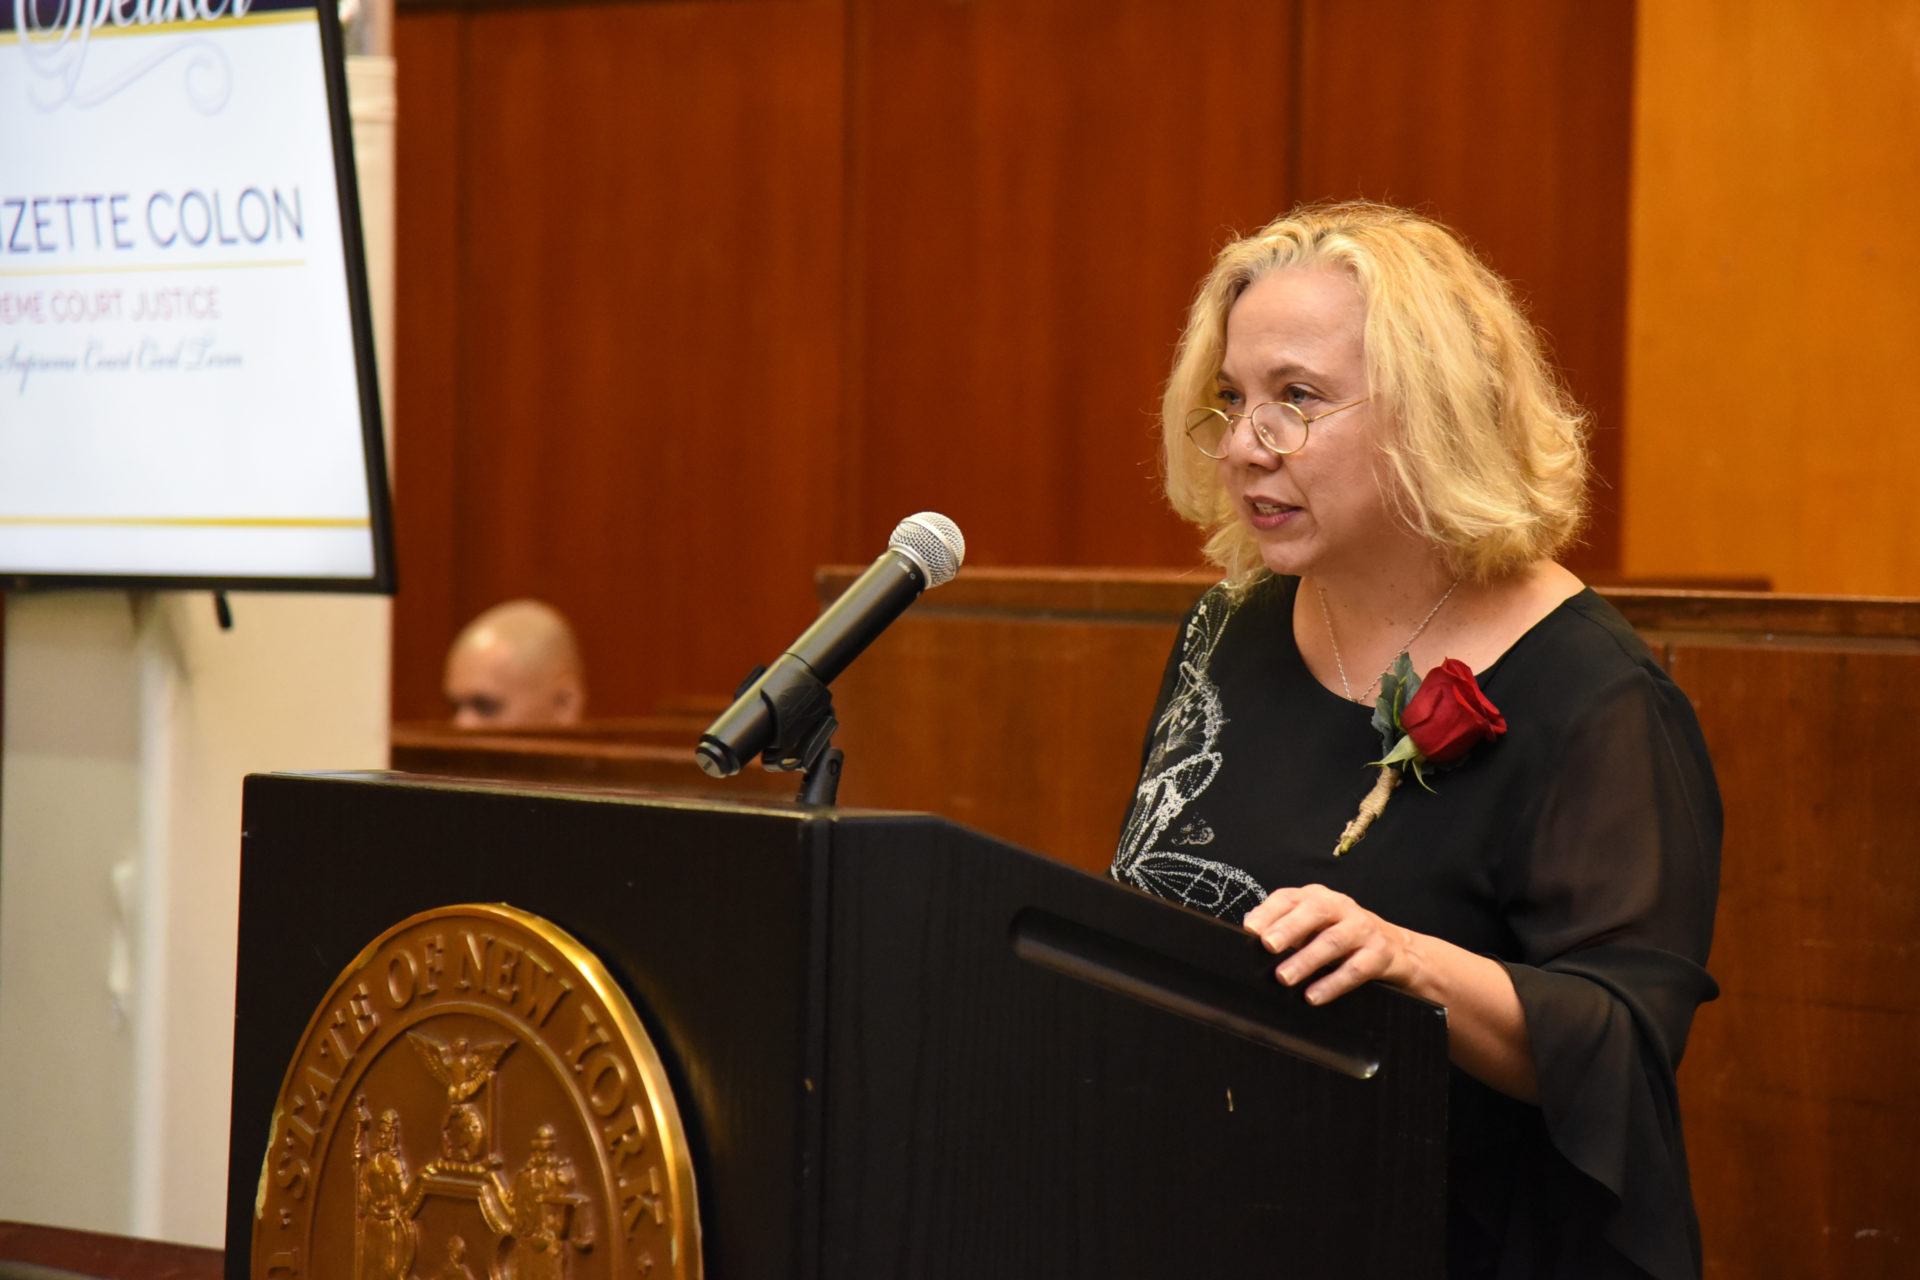 Judge Lizette Colon speaks at a Latino Court Officers Society awards celebration in 2019.